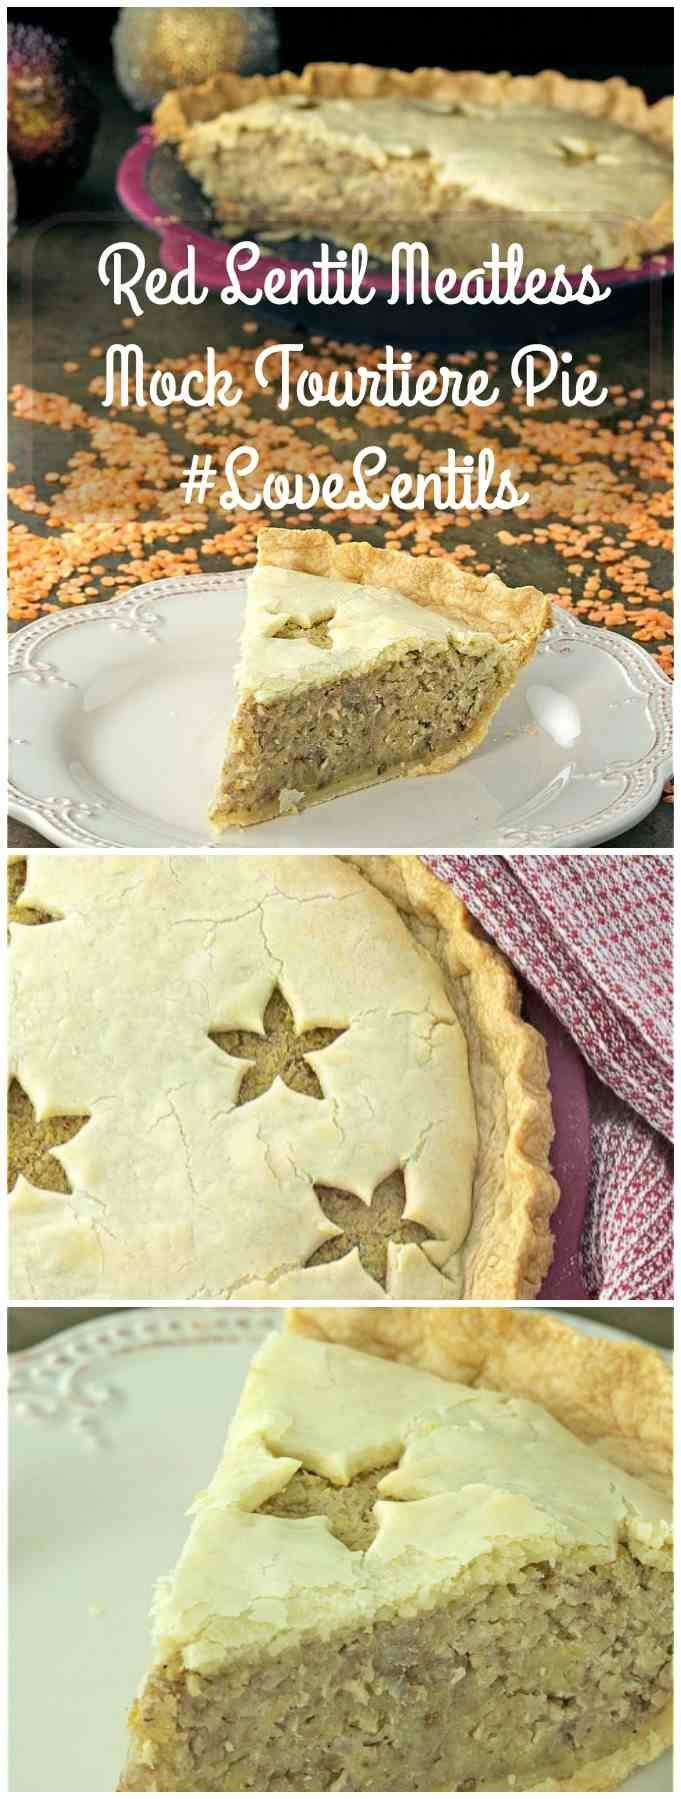 Red Lentil Meatless Mock Tourtiere Pie is the perfect alternative to the traditional French Canadian classic using lentils instead of meat.| homemadeandyummy.com